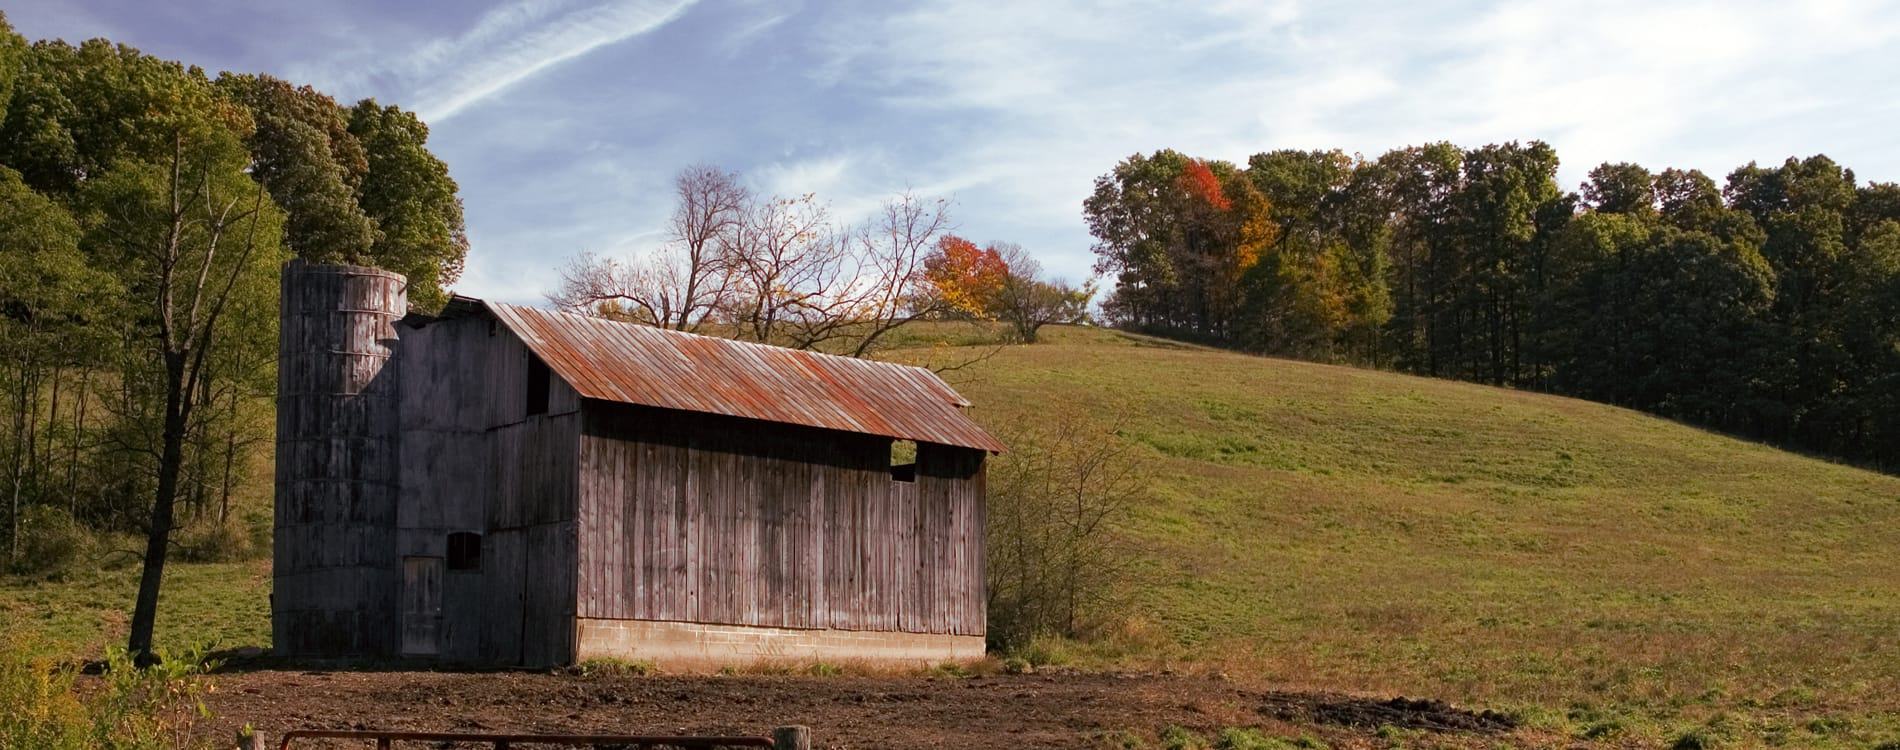 Amish Country, OH - Old Barn